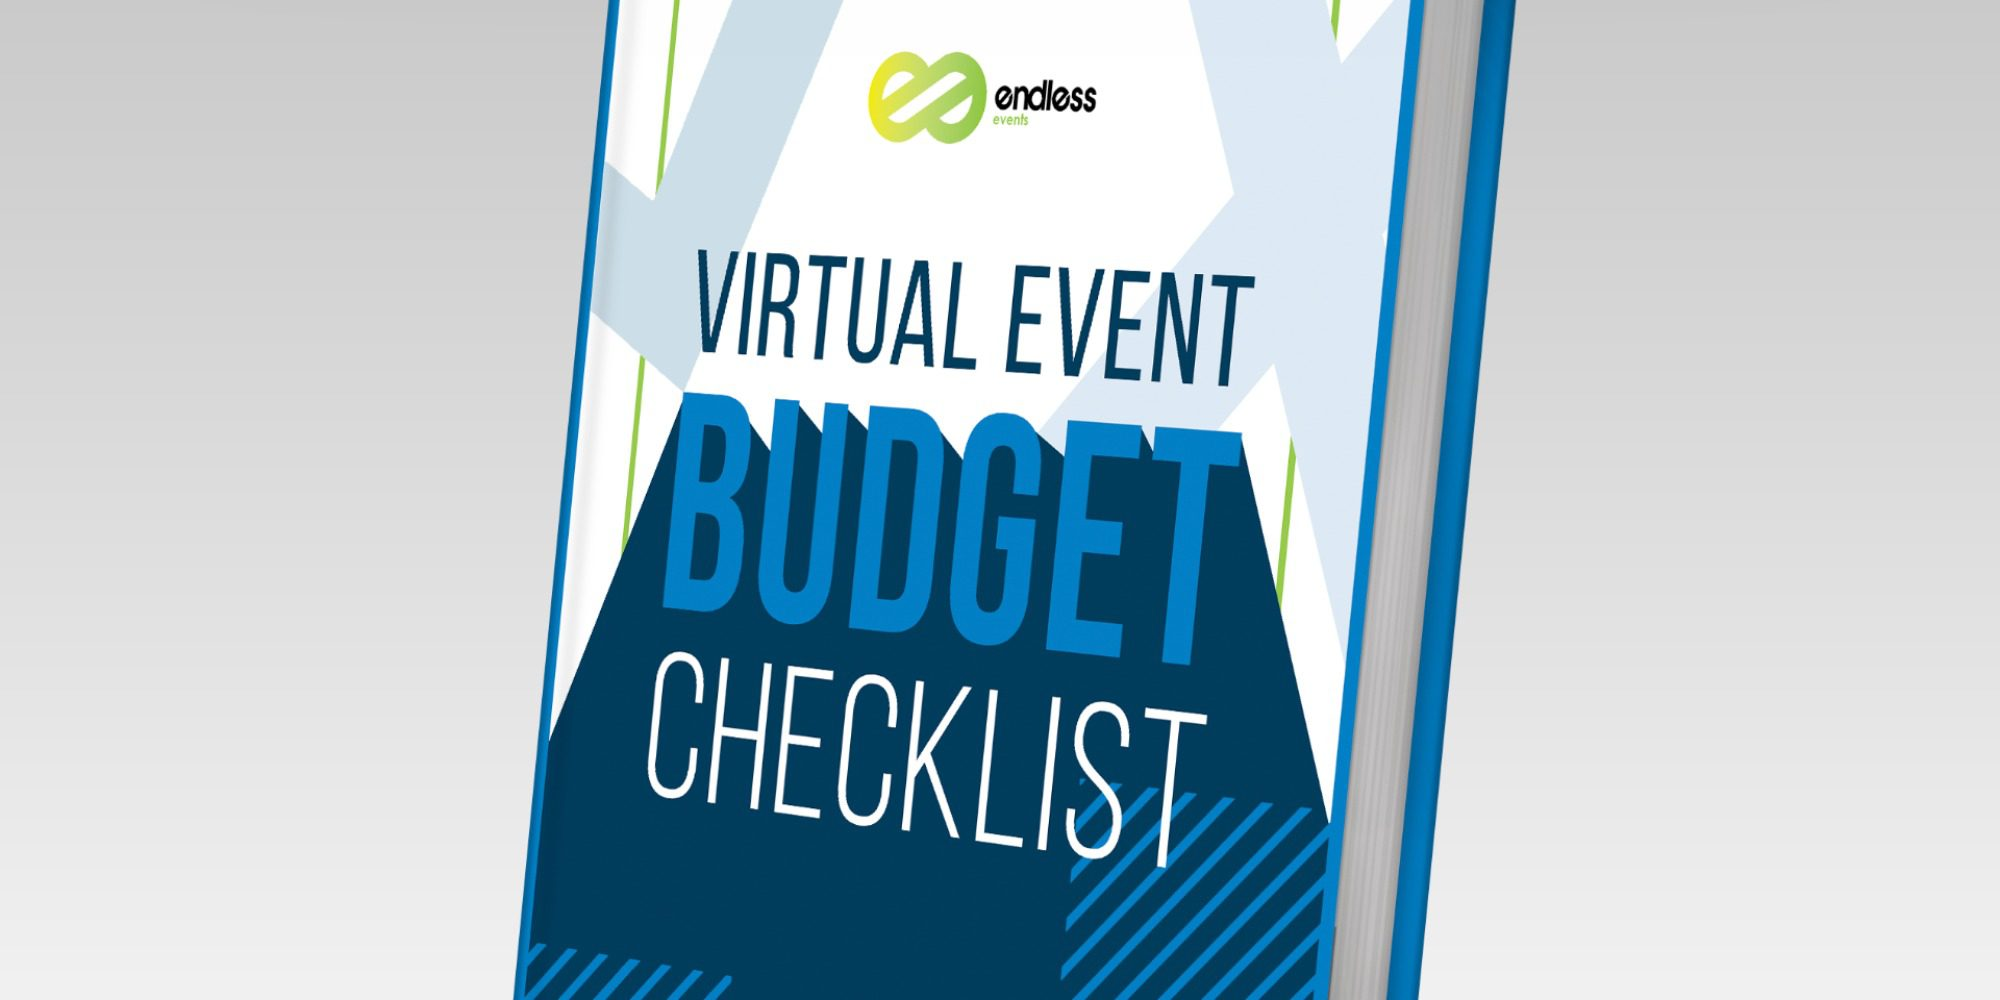 Your 2021 Virtual Event Budget Checklist!